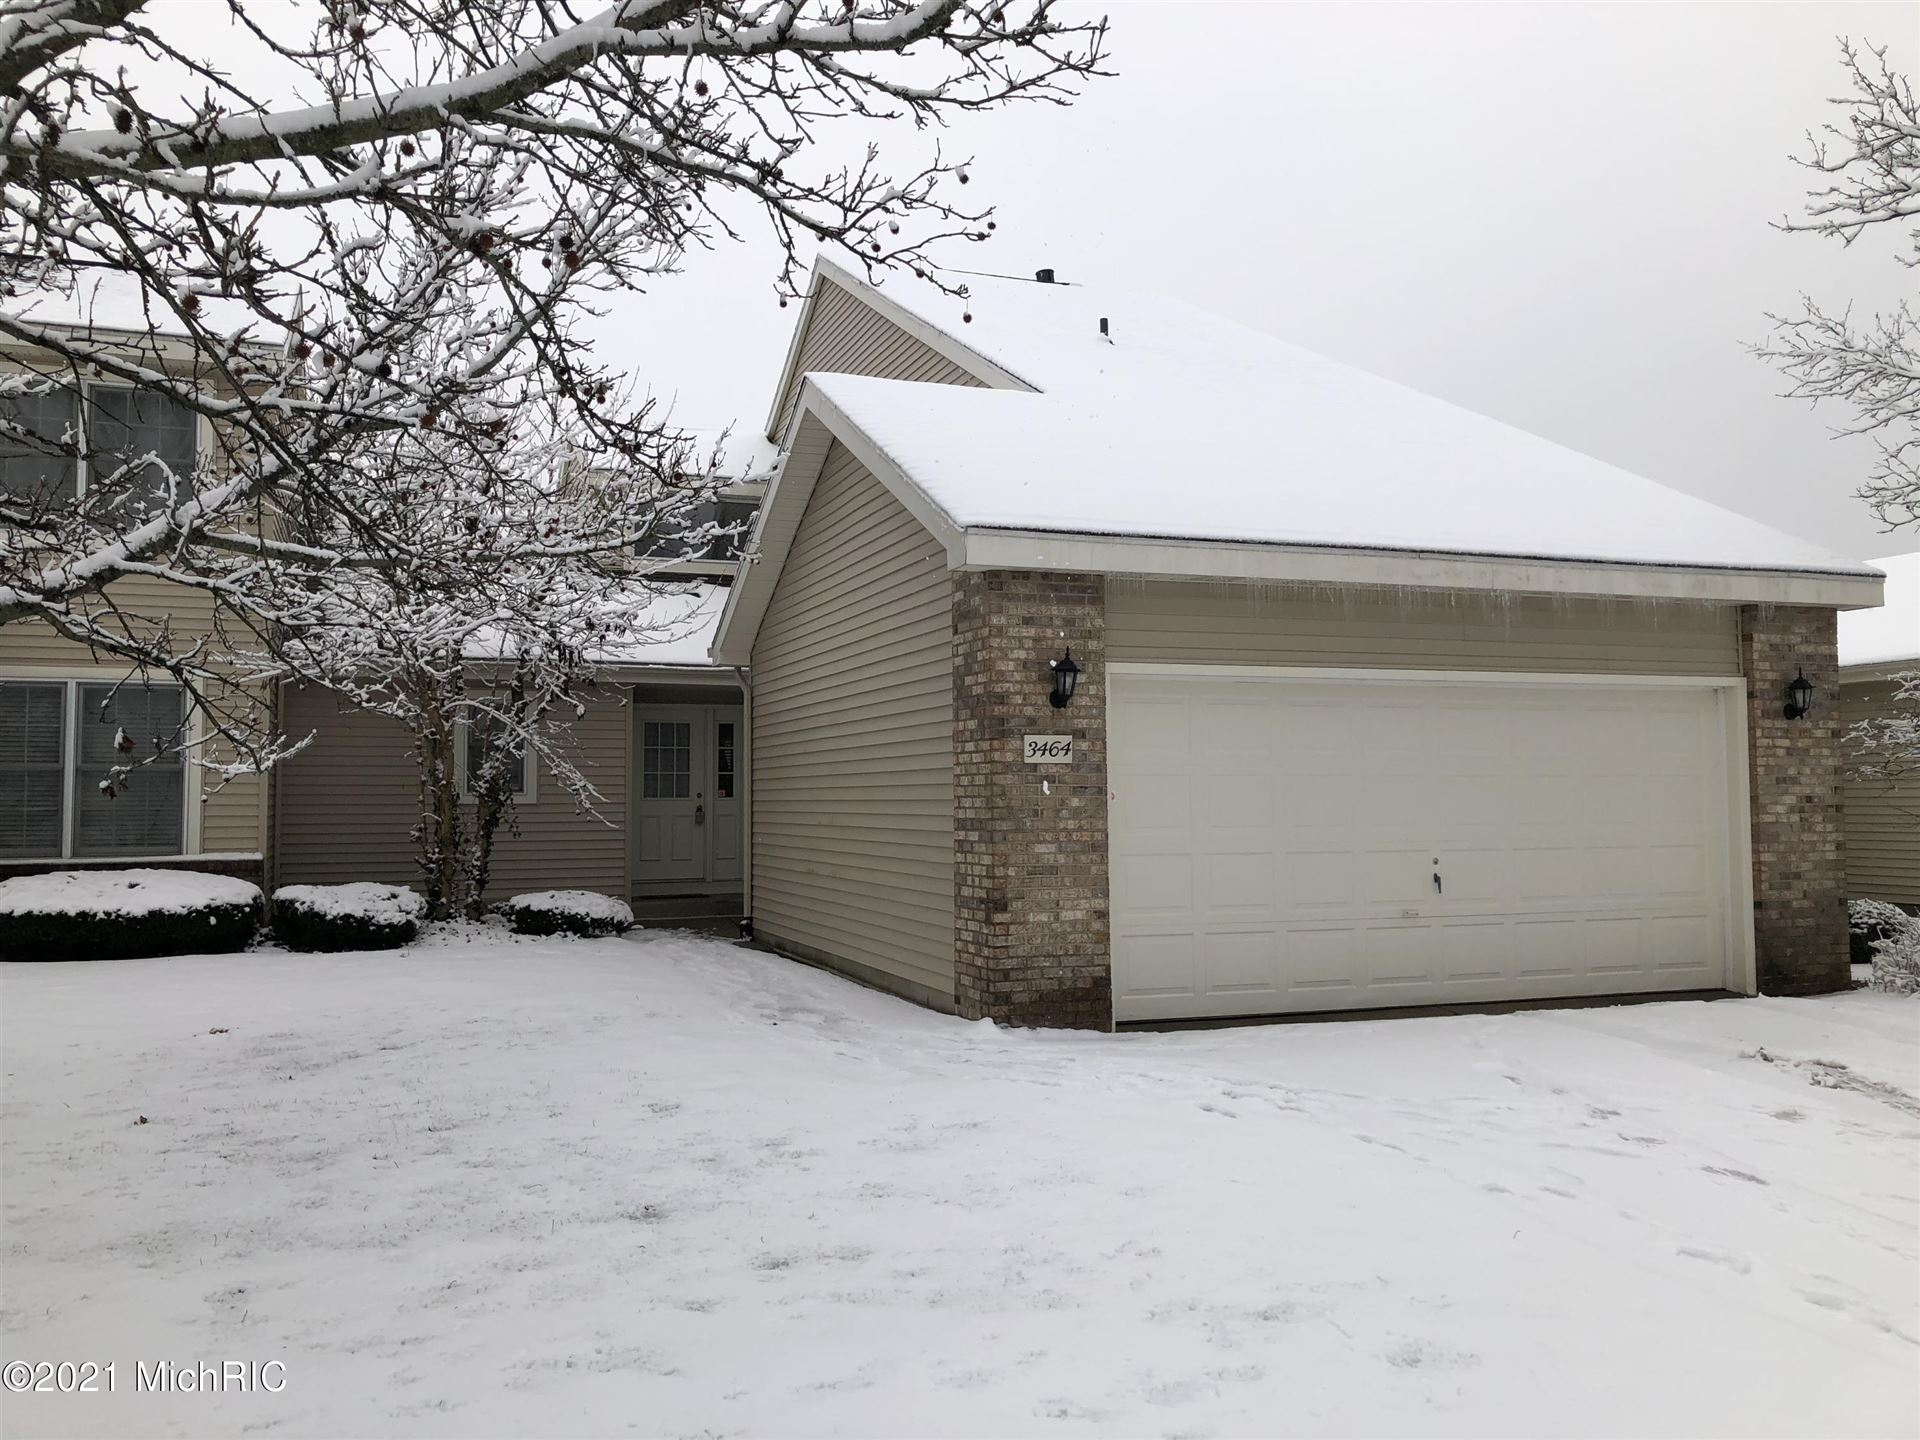 3464 Woodbridge Lane, Portage, MI 49024 - MLS#: 21000078